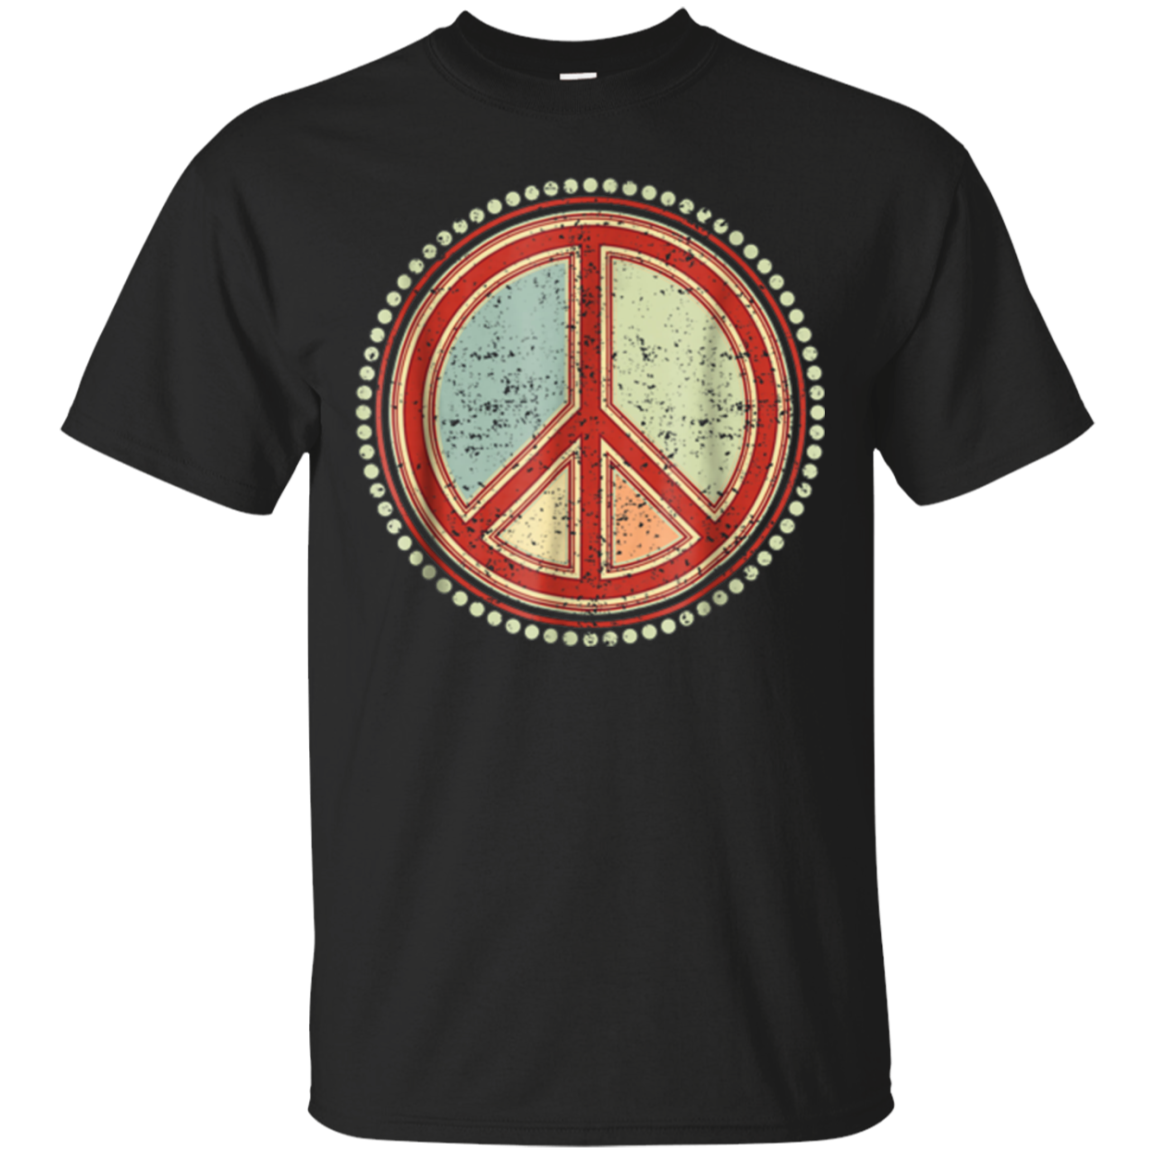 Flower Power Peace Sign - Grunge 1 Groovy Retro T-Shirt